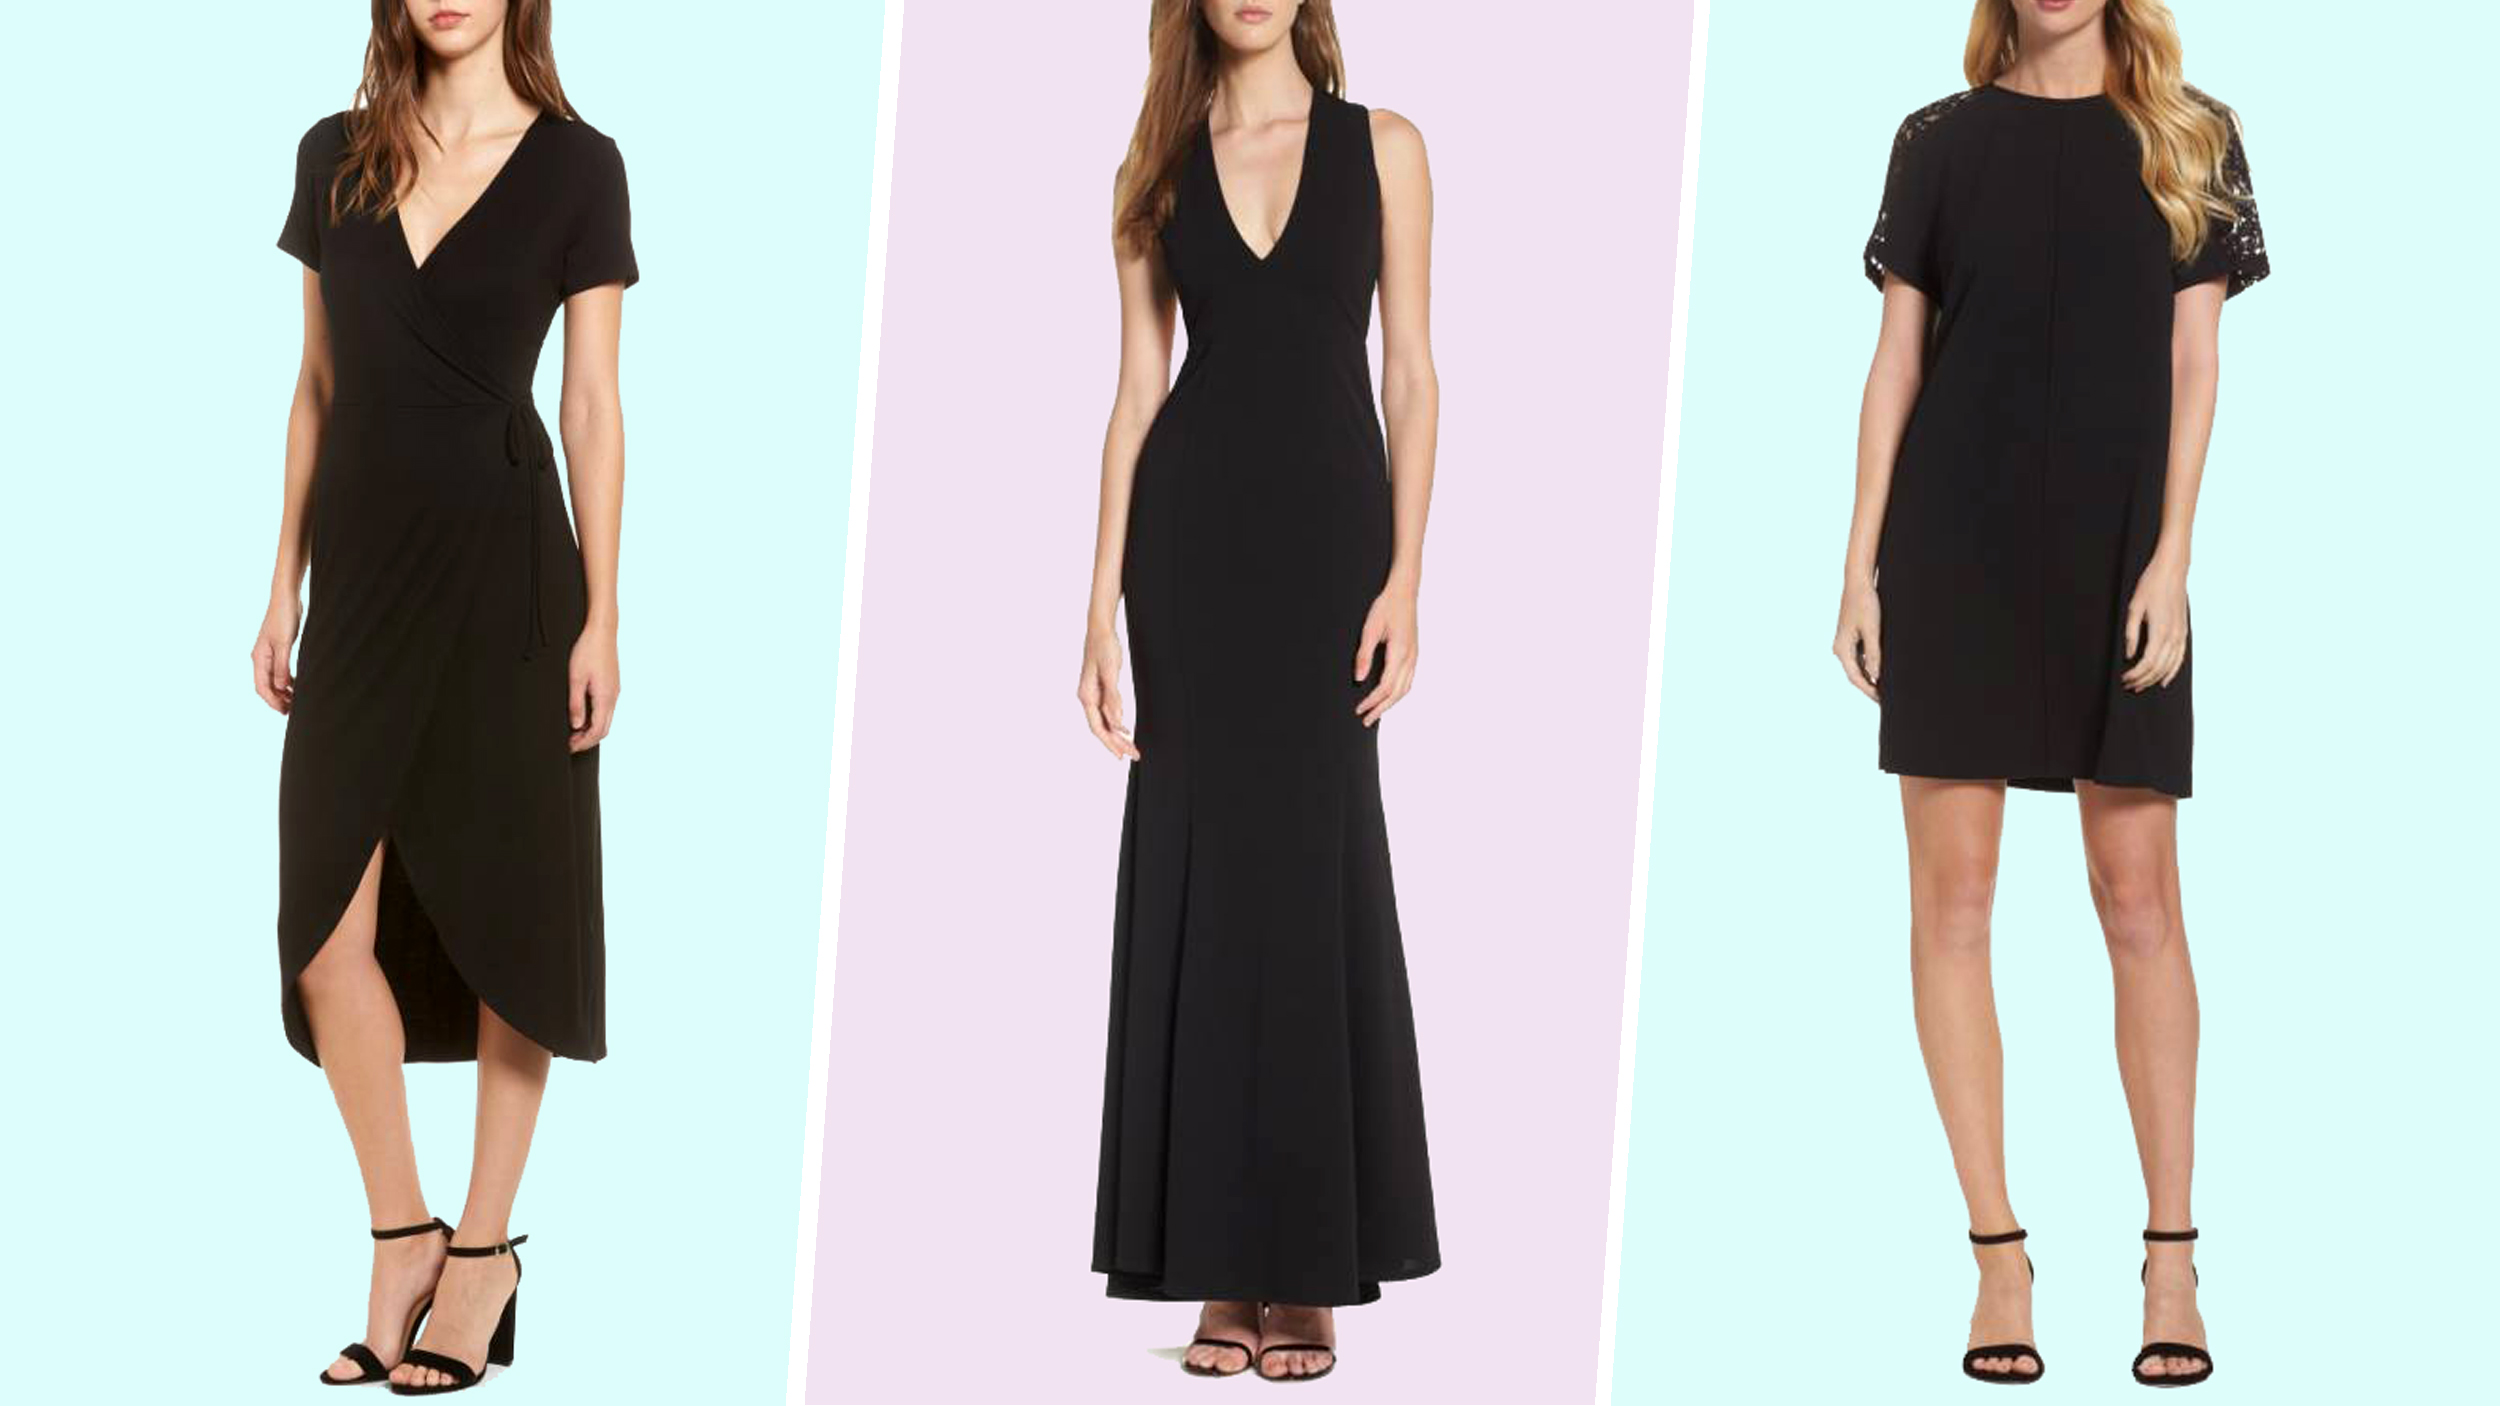 The best little black dresses you can buy online right now